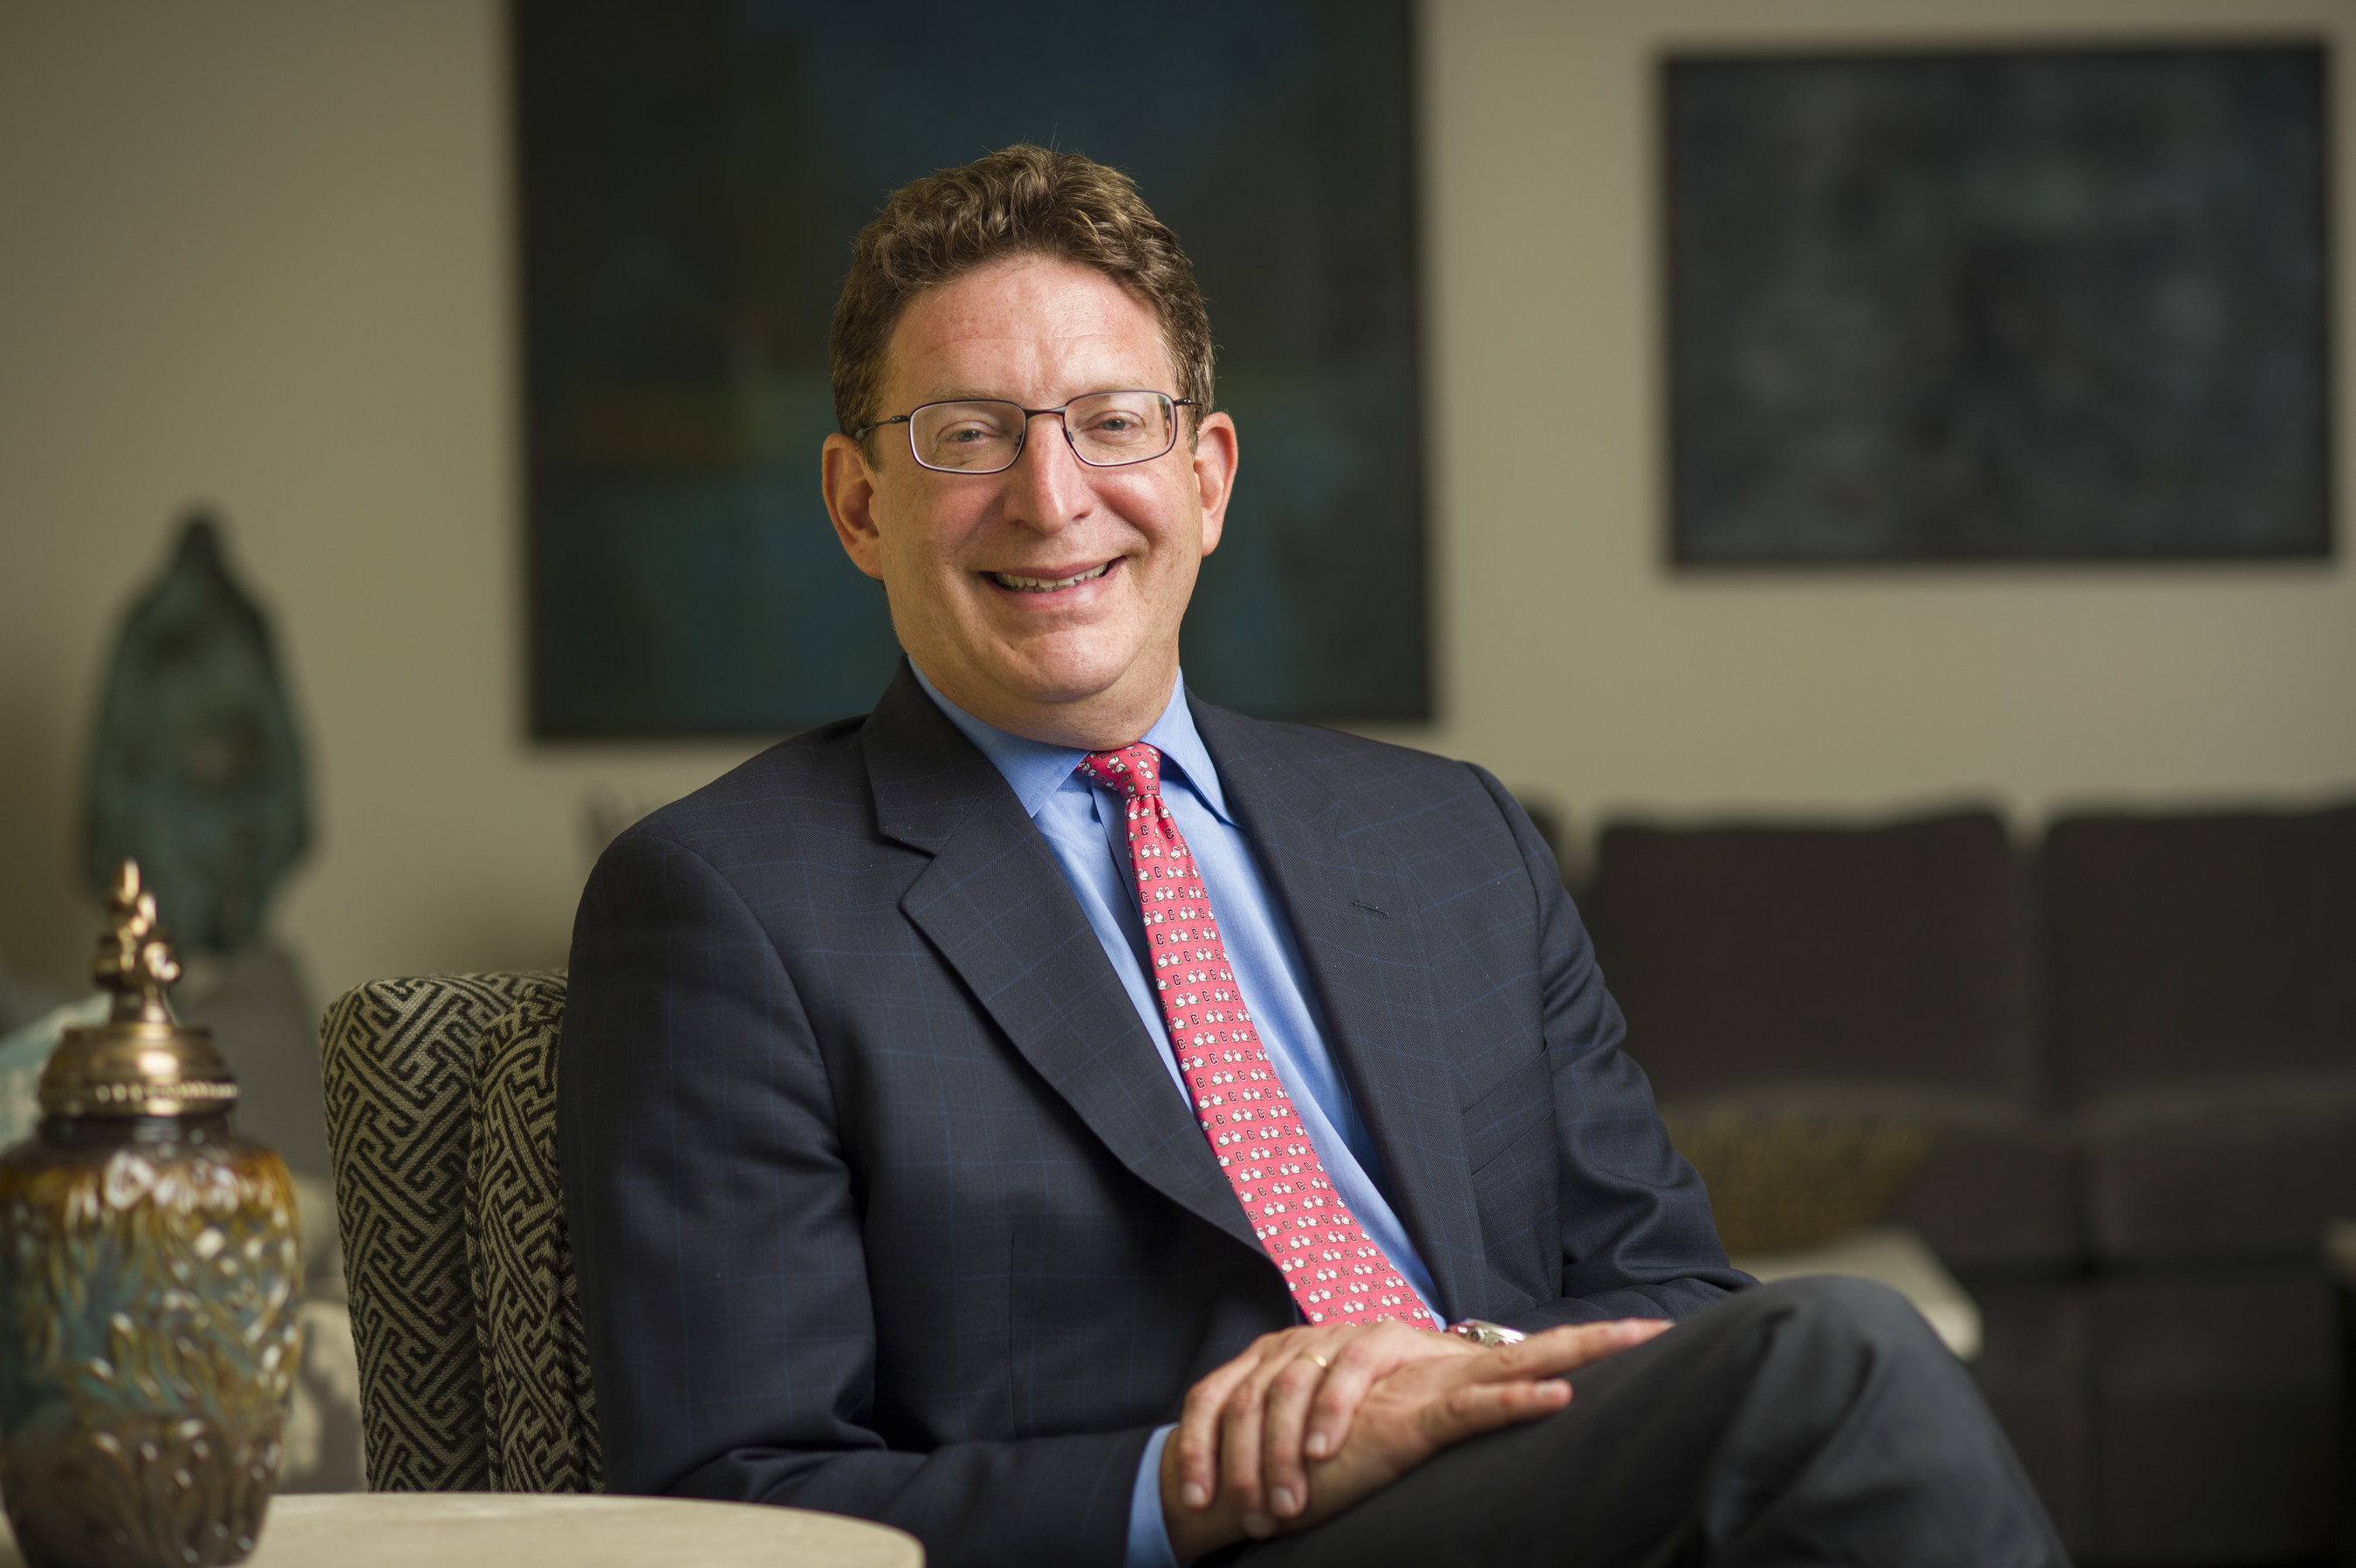 Dr. Jeffrey Herbst, the outgoing president of Colgate University and a noted political scientist and award-winning author, has been named president and CEO of the Newseum and the Newseum Institute.